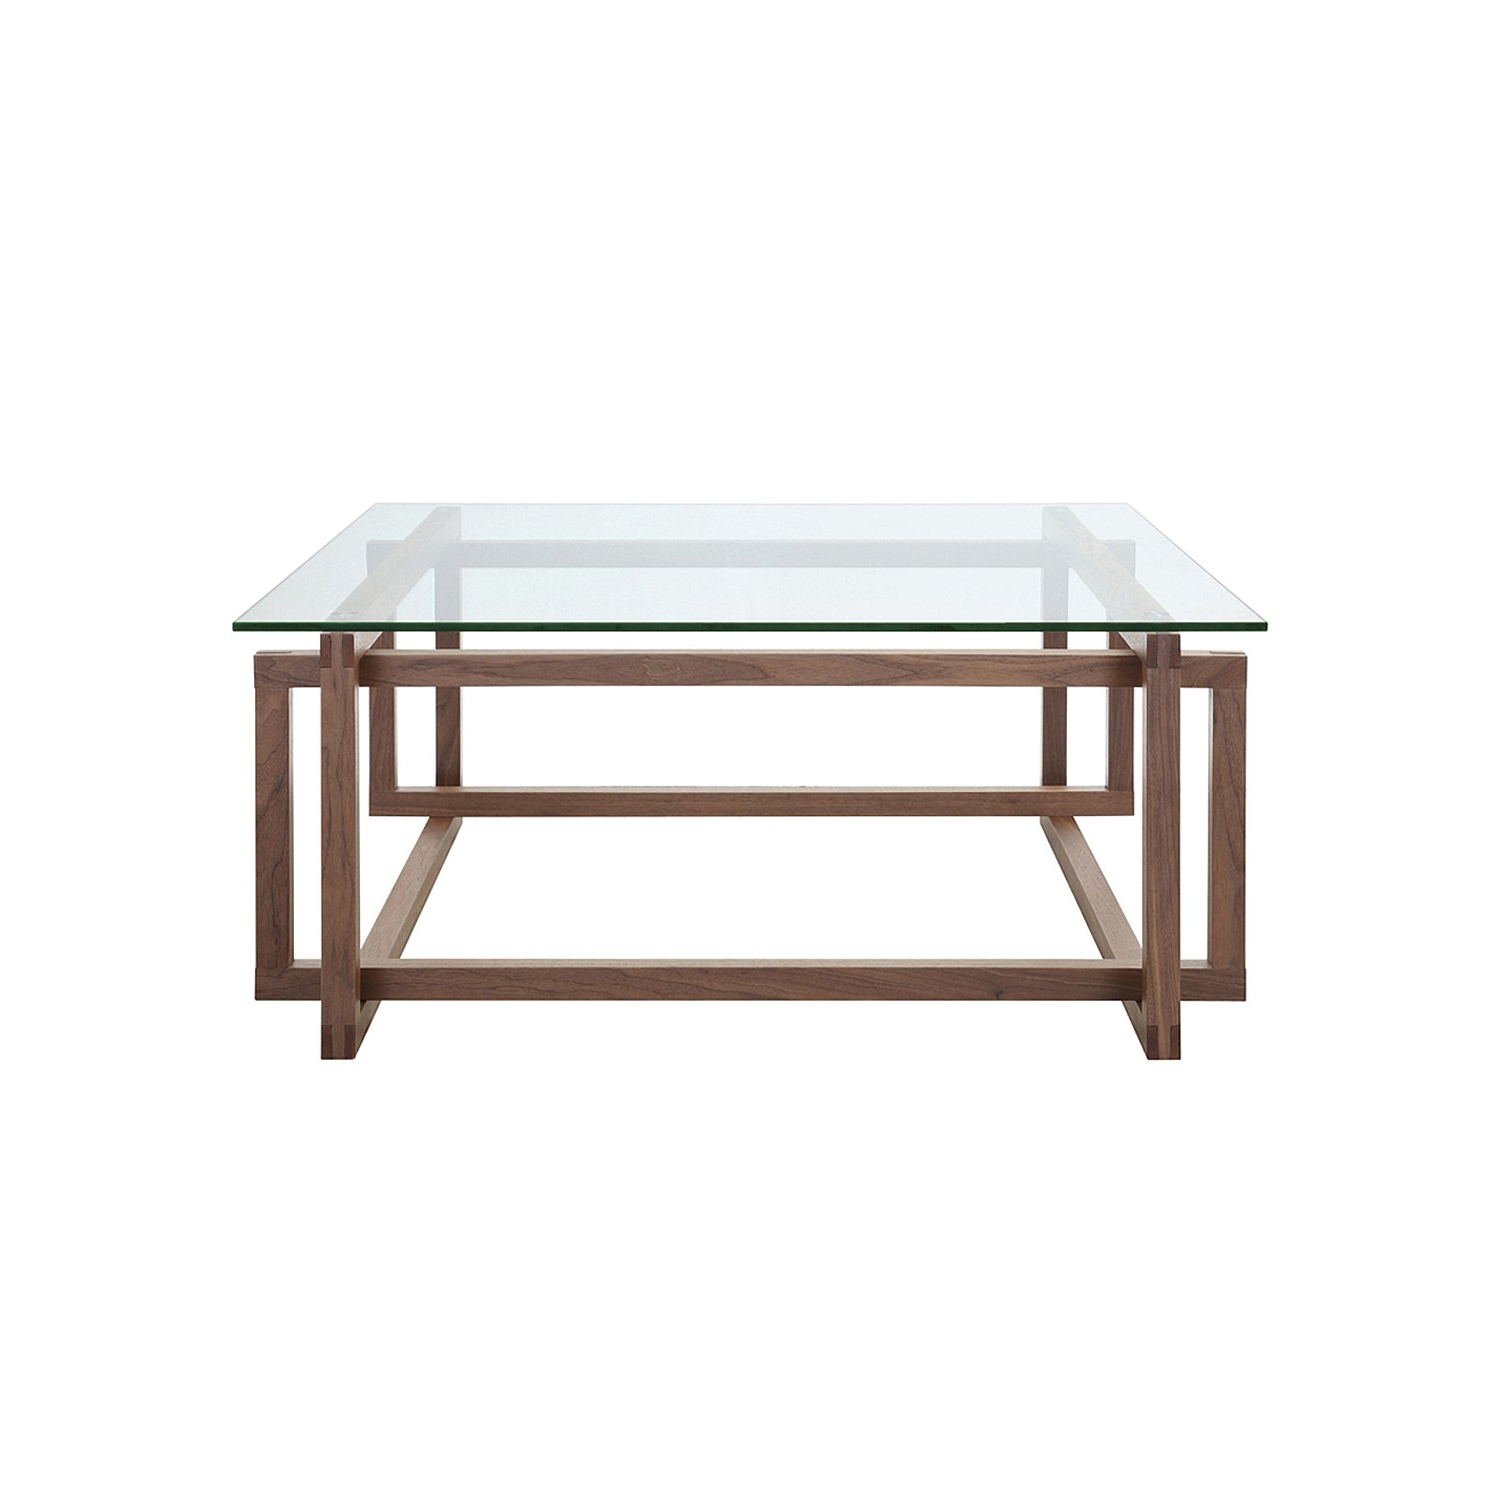 Kyra Console Tables Regarding Newest Living Room Furniture,view Range Online Now – Kyra Coffee Table (View 3 of 20)